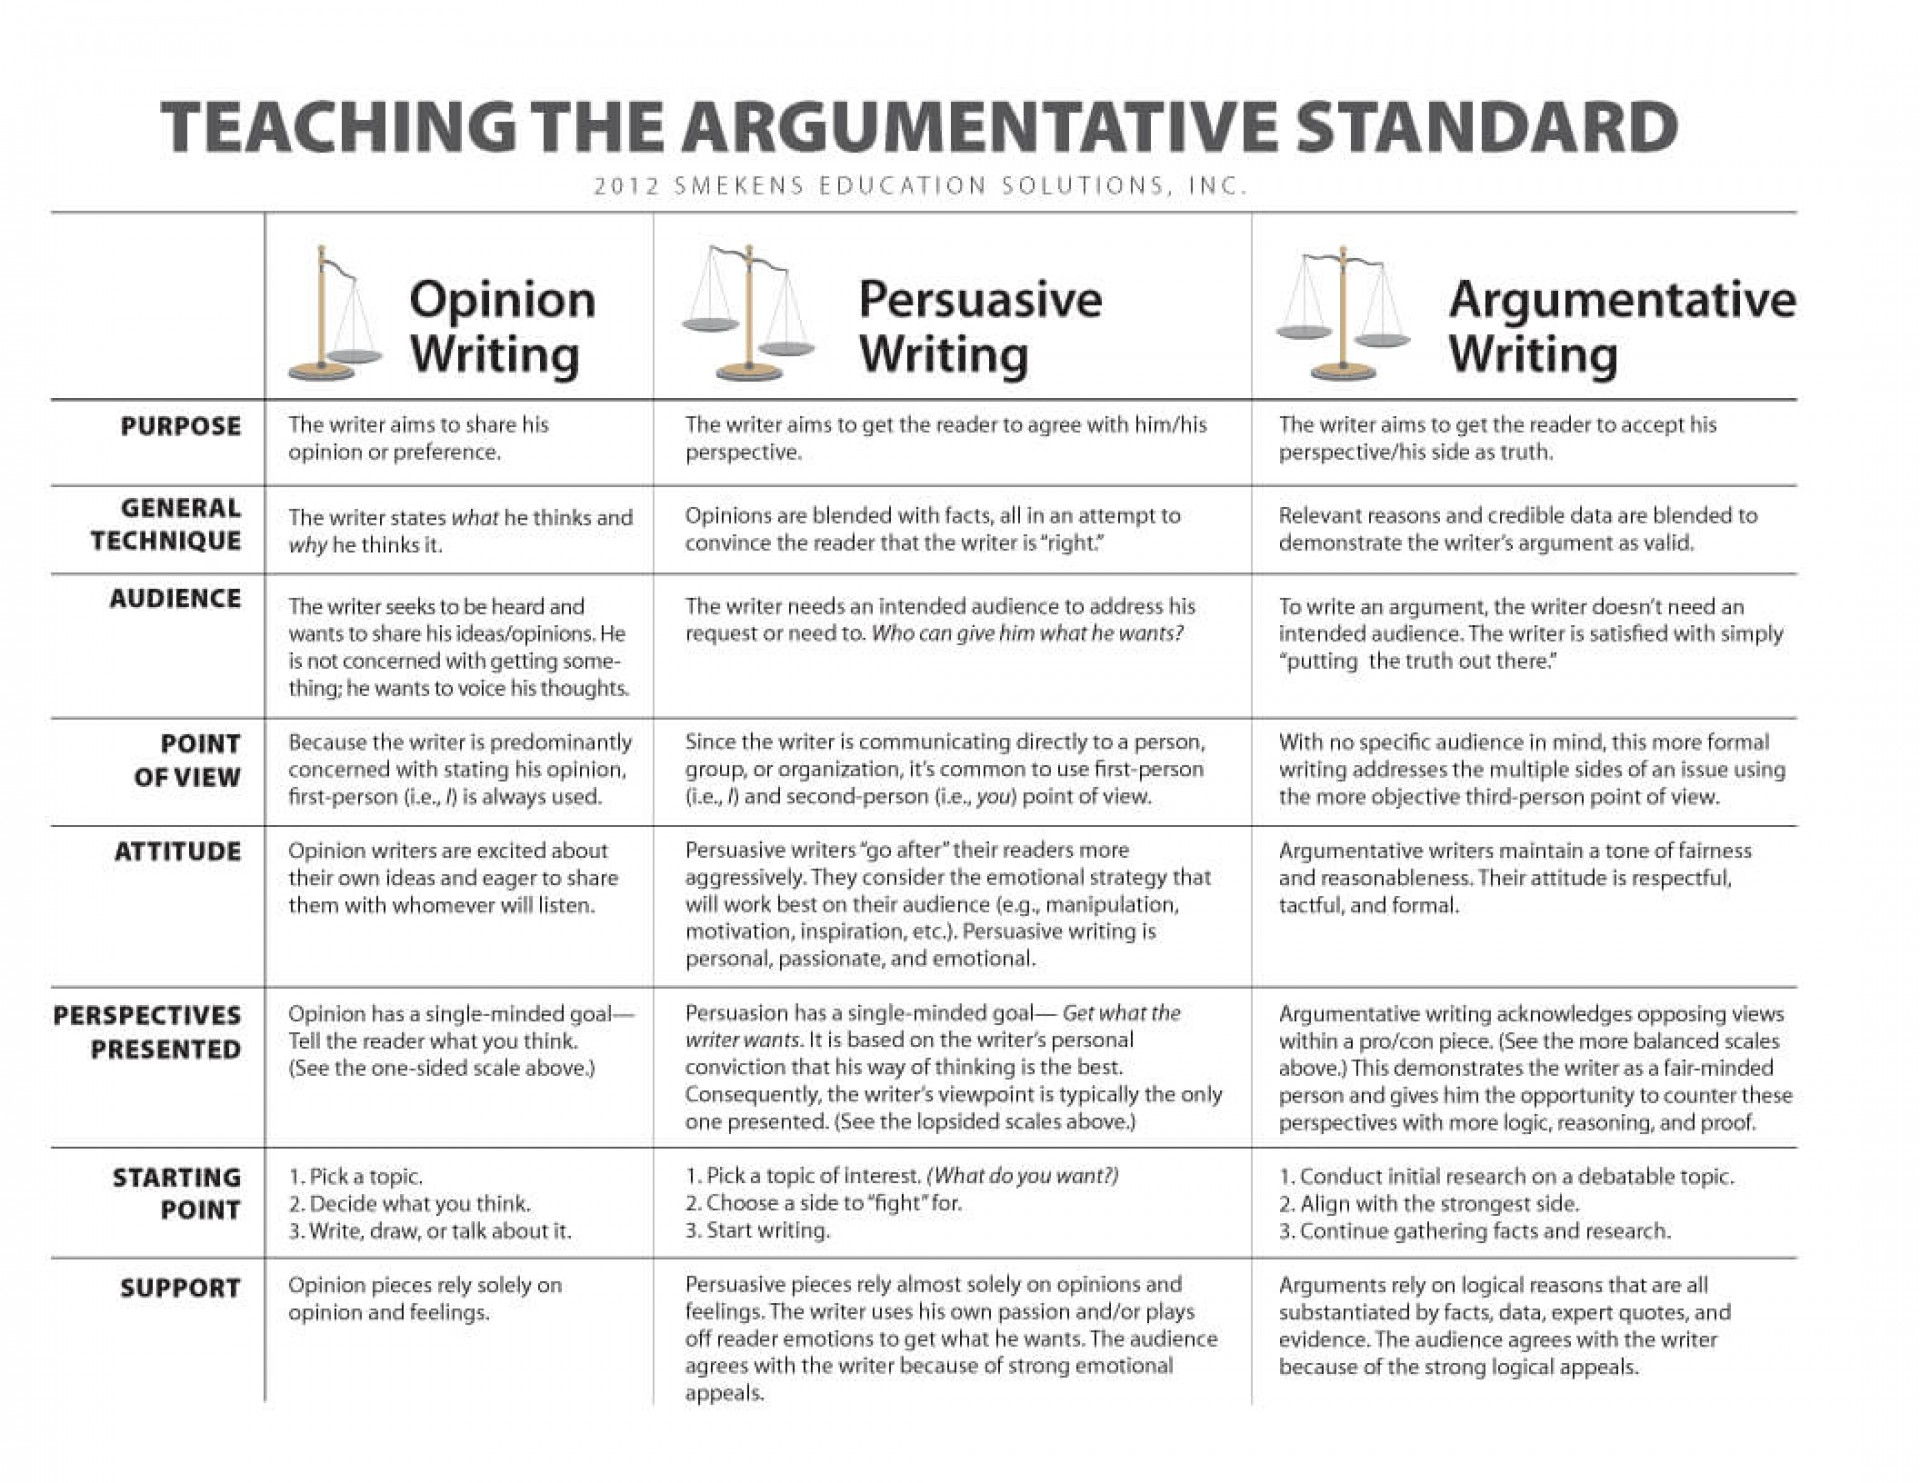 012 Teaching The Argumetative Standardo How To Begin An Argumentative Essay Stirring Write Ap Lang Step By Pdf 1920